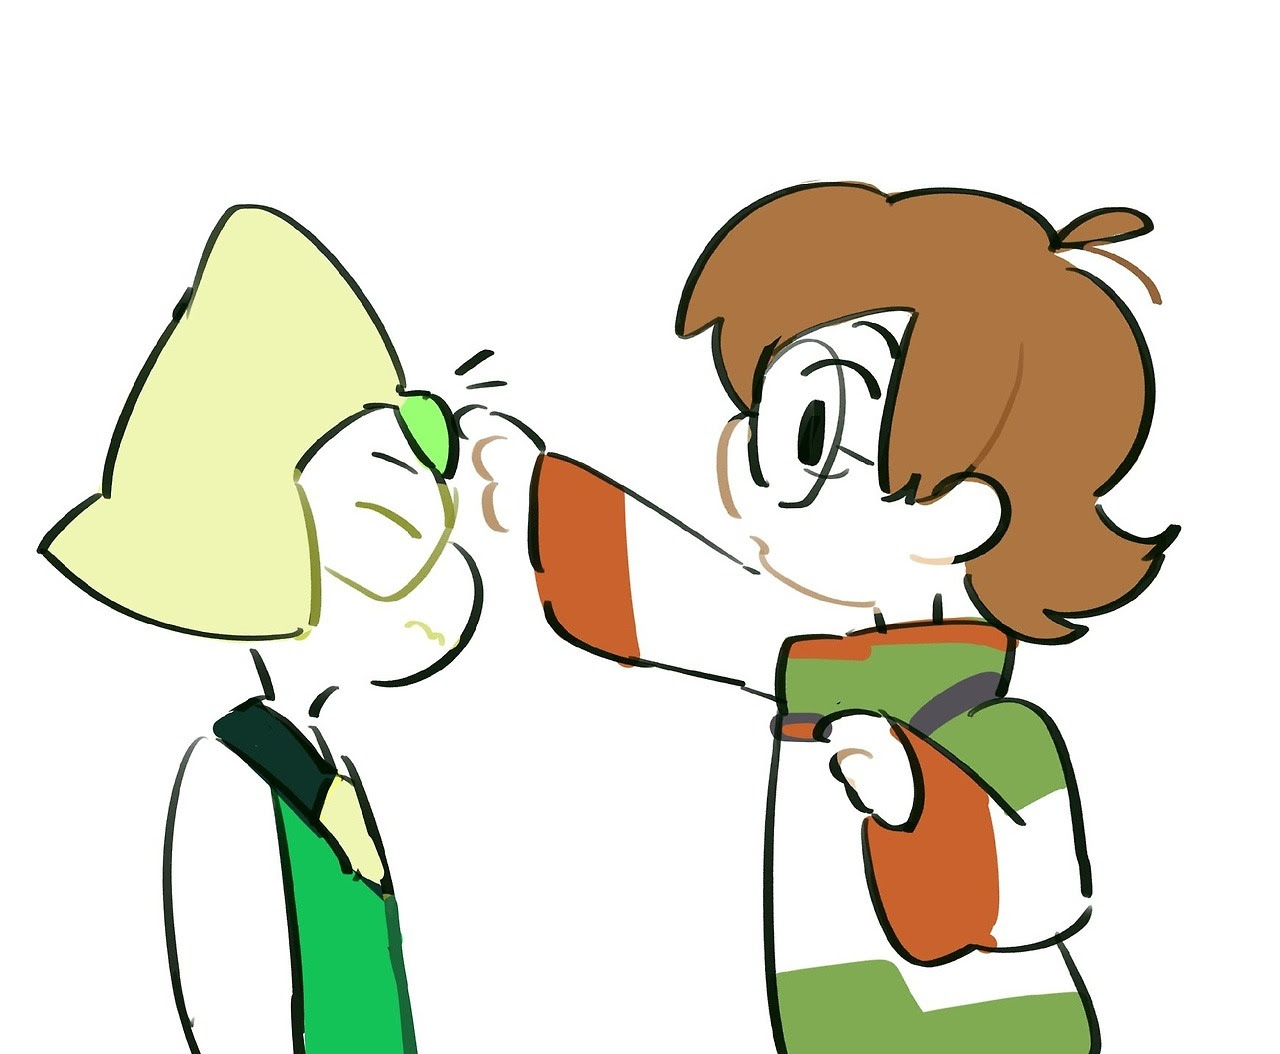 Ooh what's that//boop!